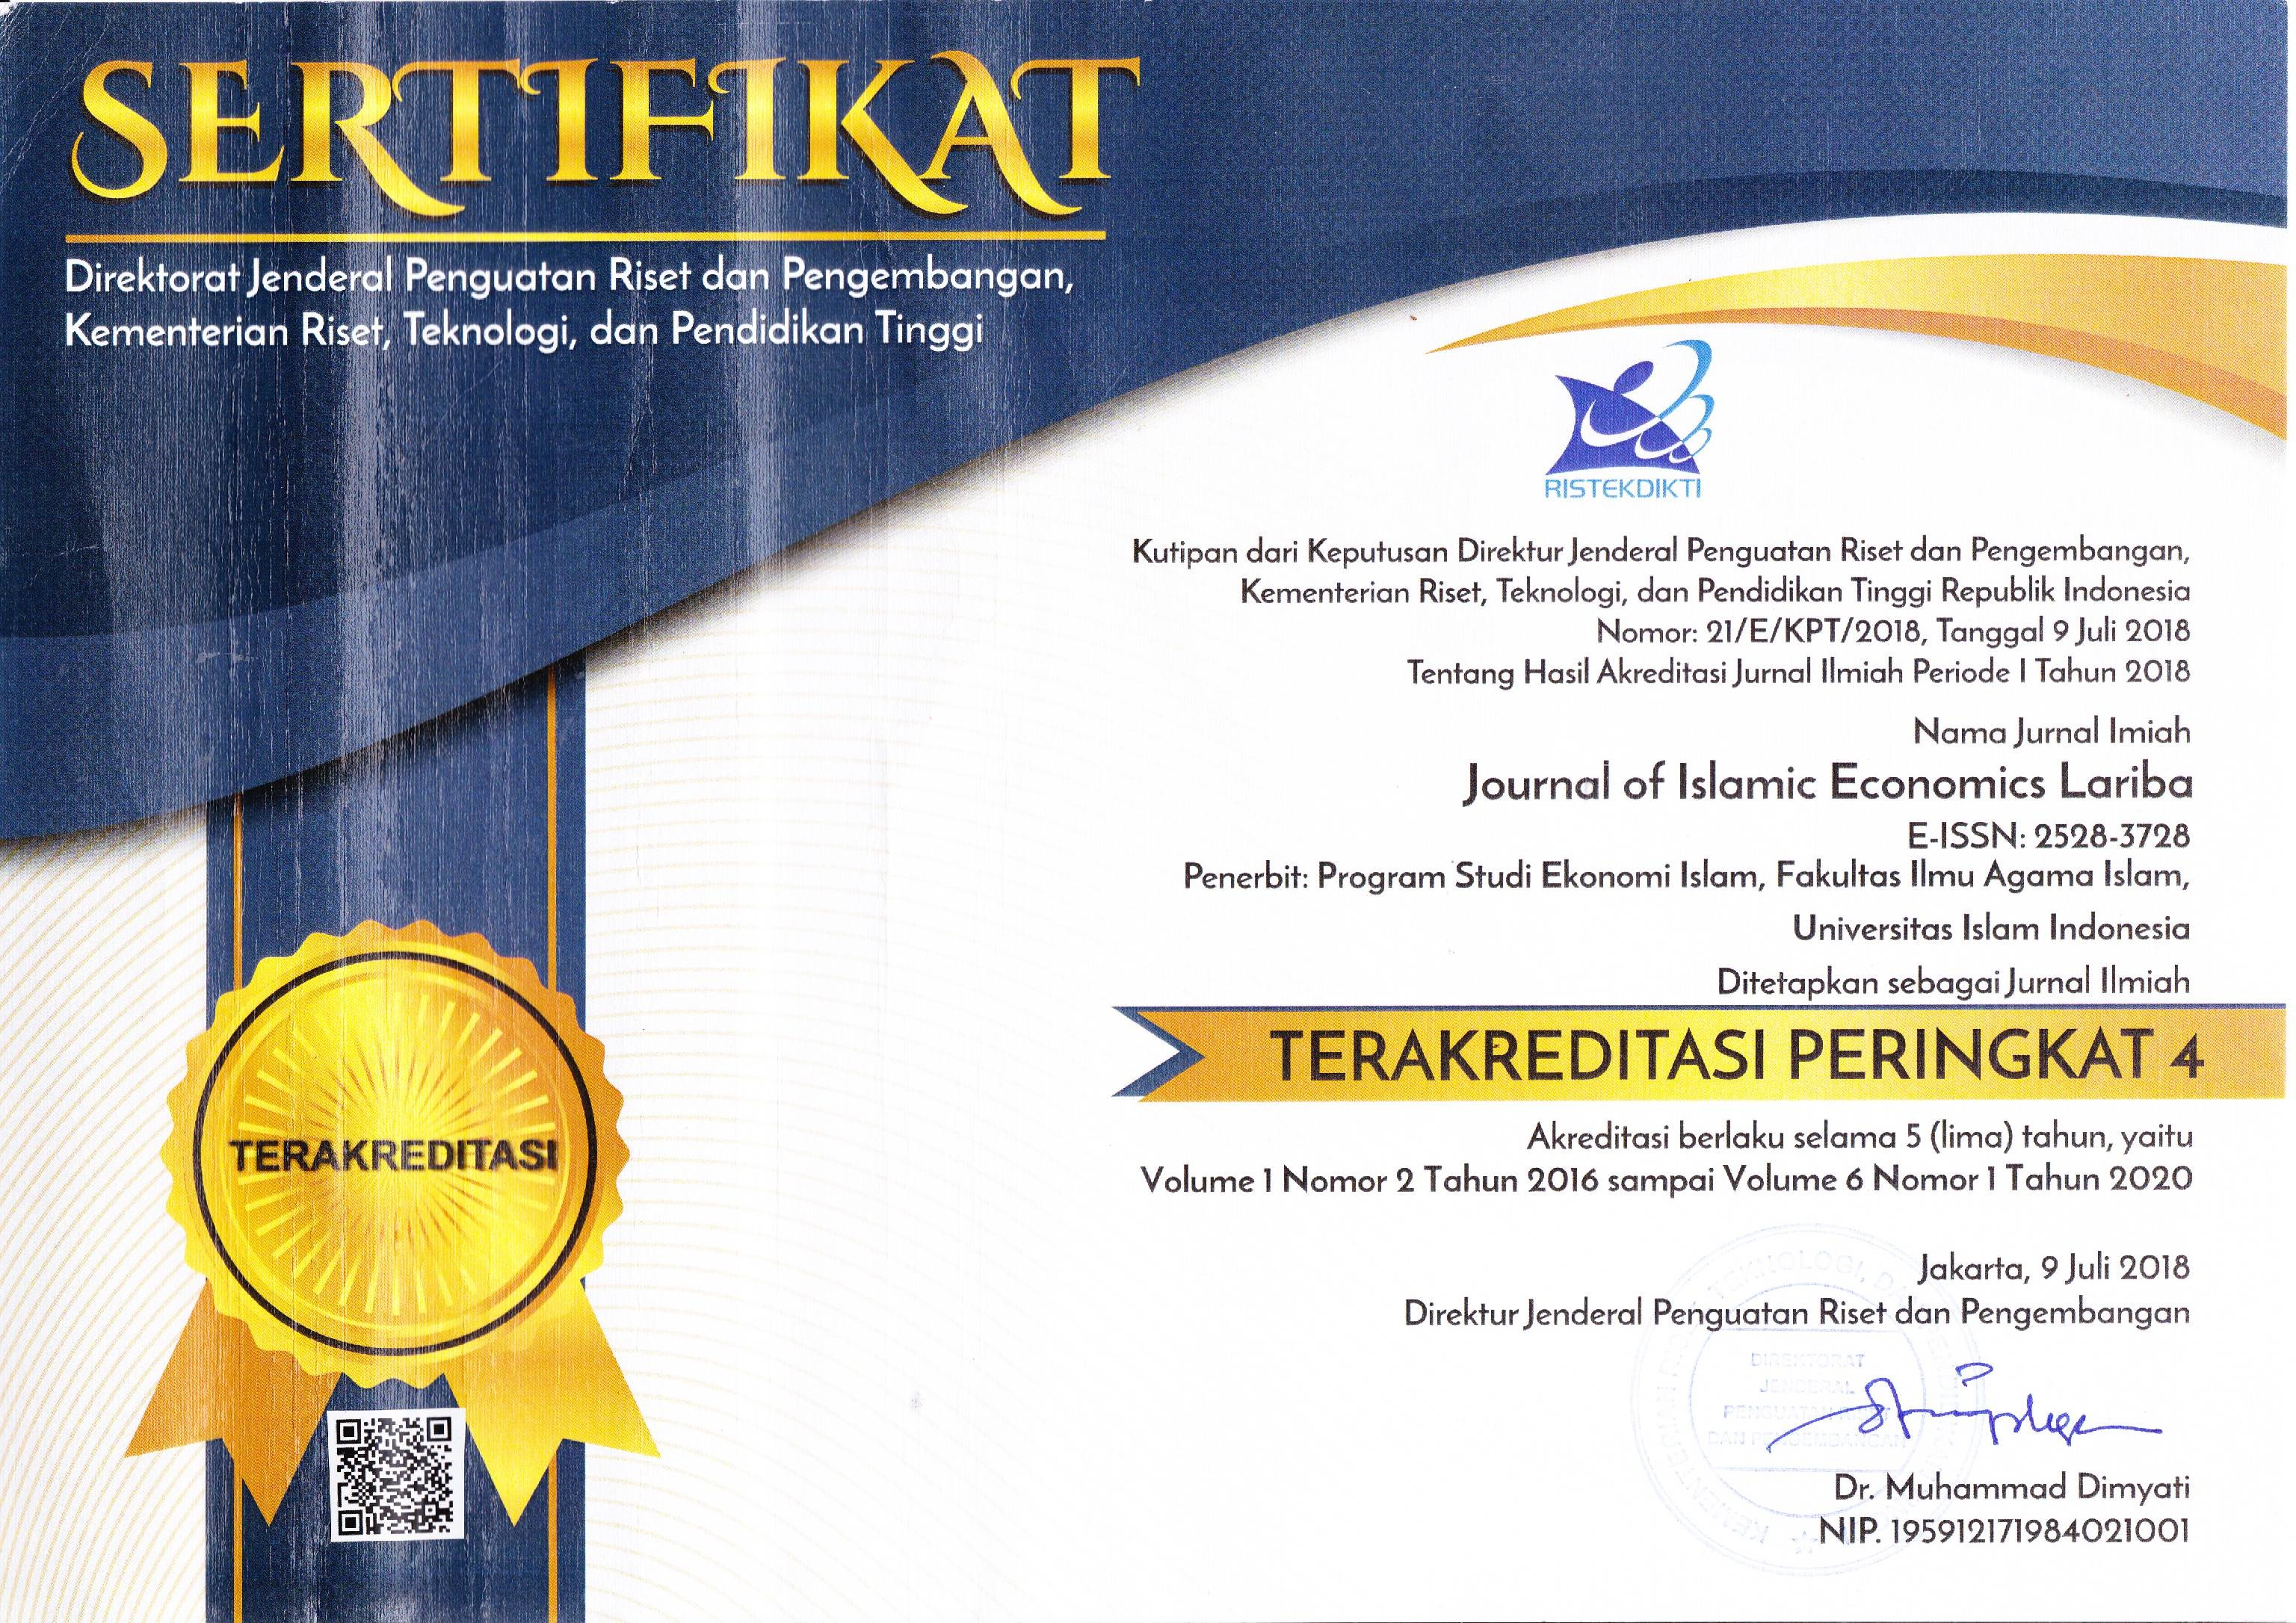 Sertifikat Terakreditasi Peringkat 4 Journal of Islamic Economics Lariba